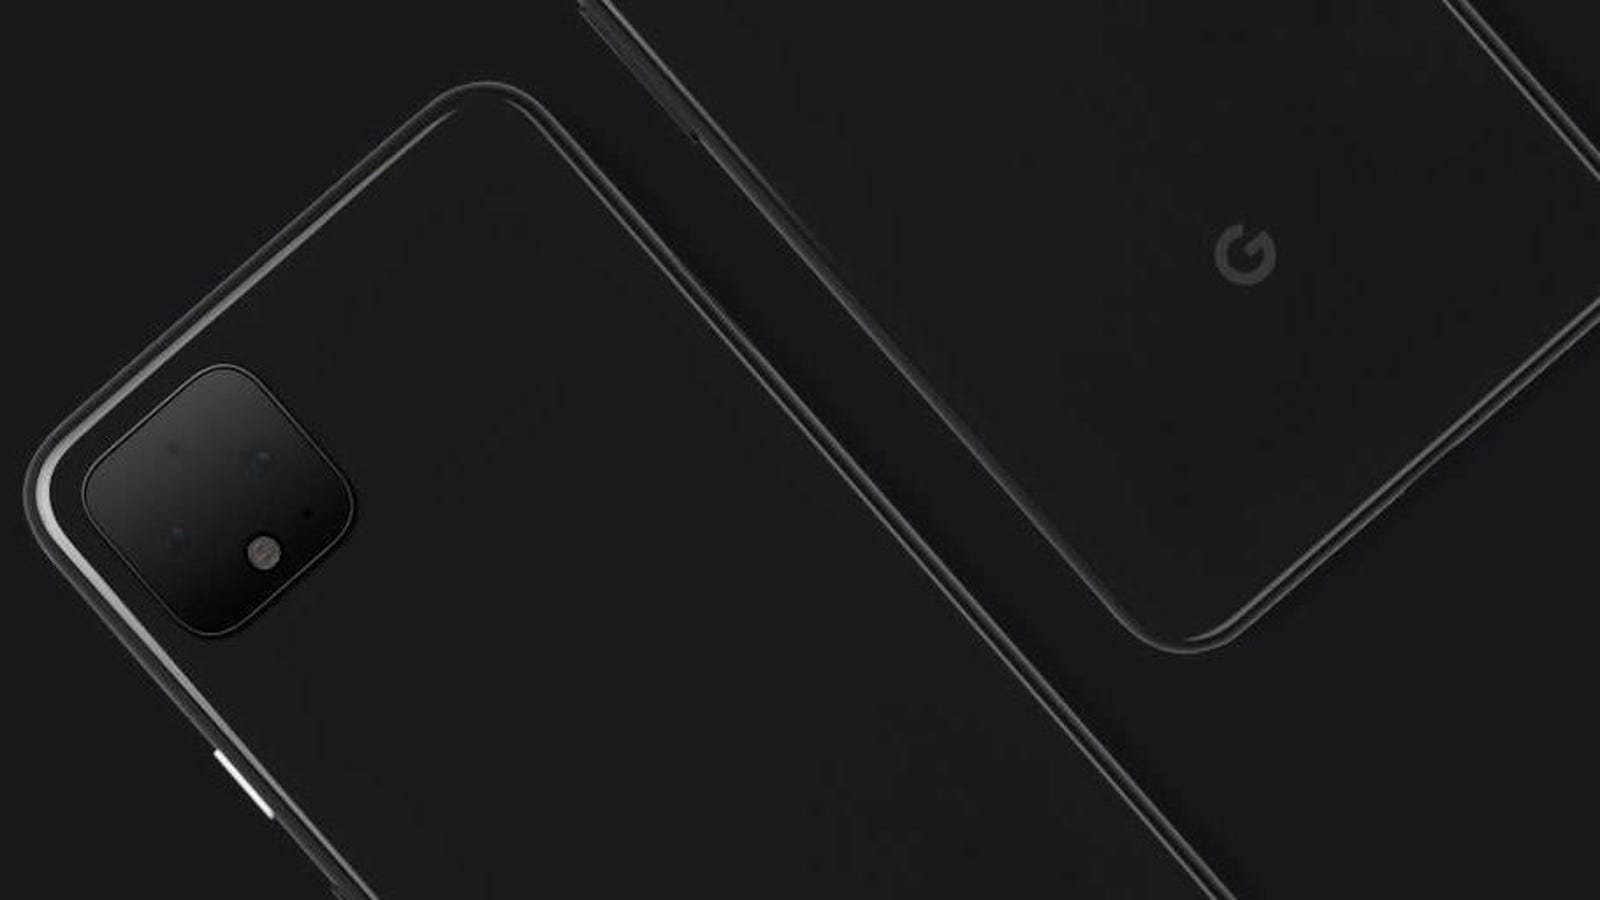 Leaks and Code Clues Suggest Google Has More Nifty Camera Features Planned for Pixel 4